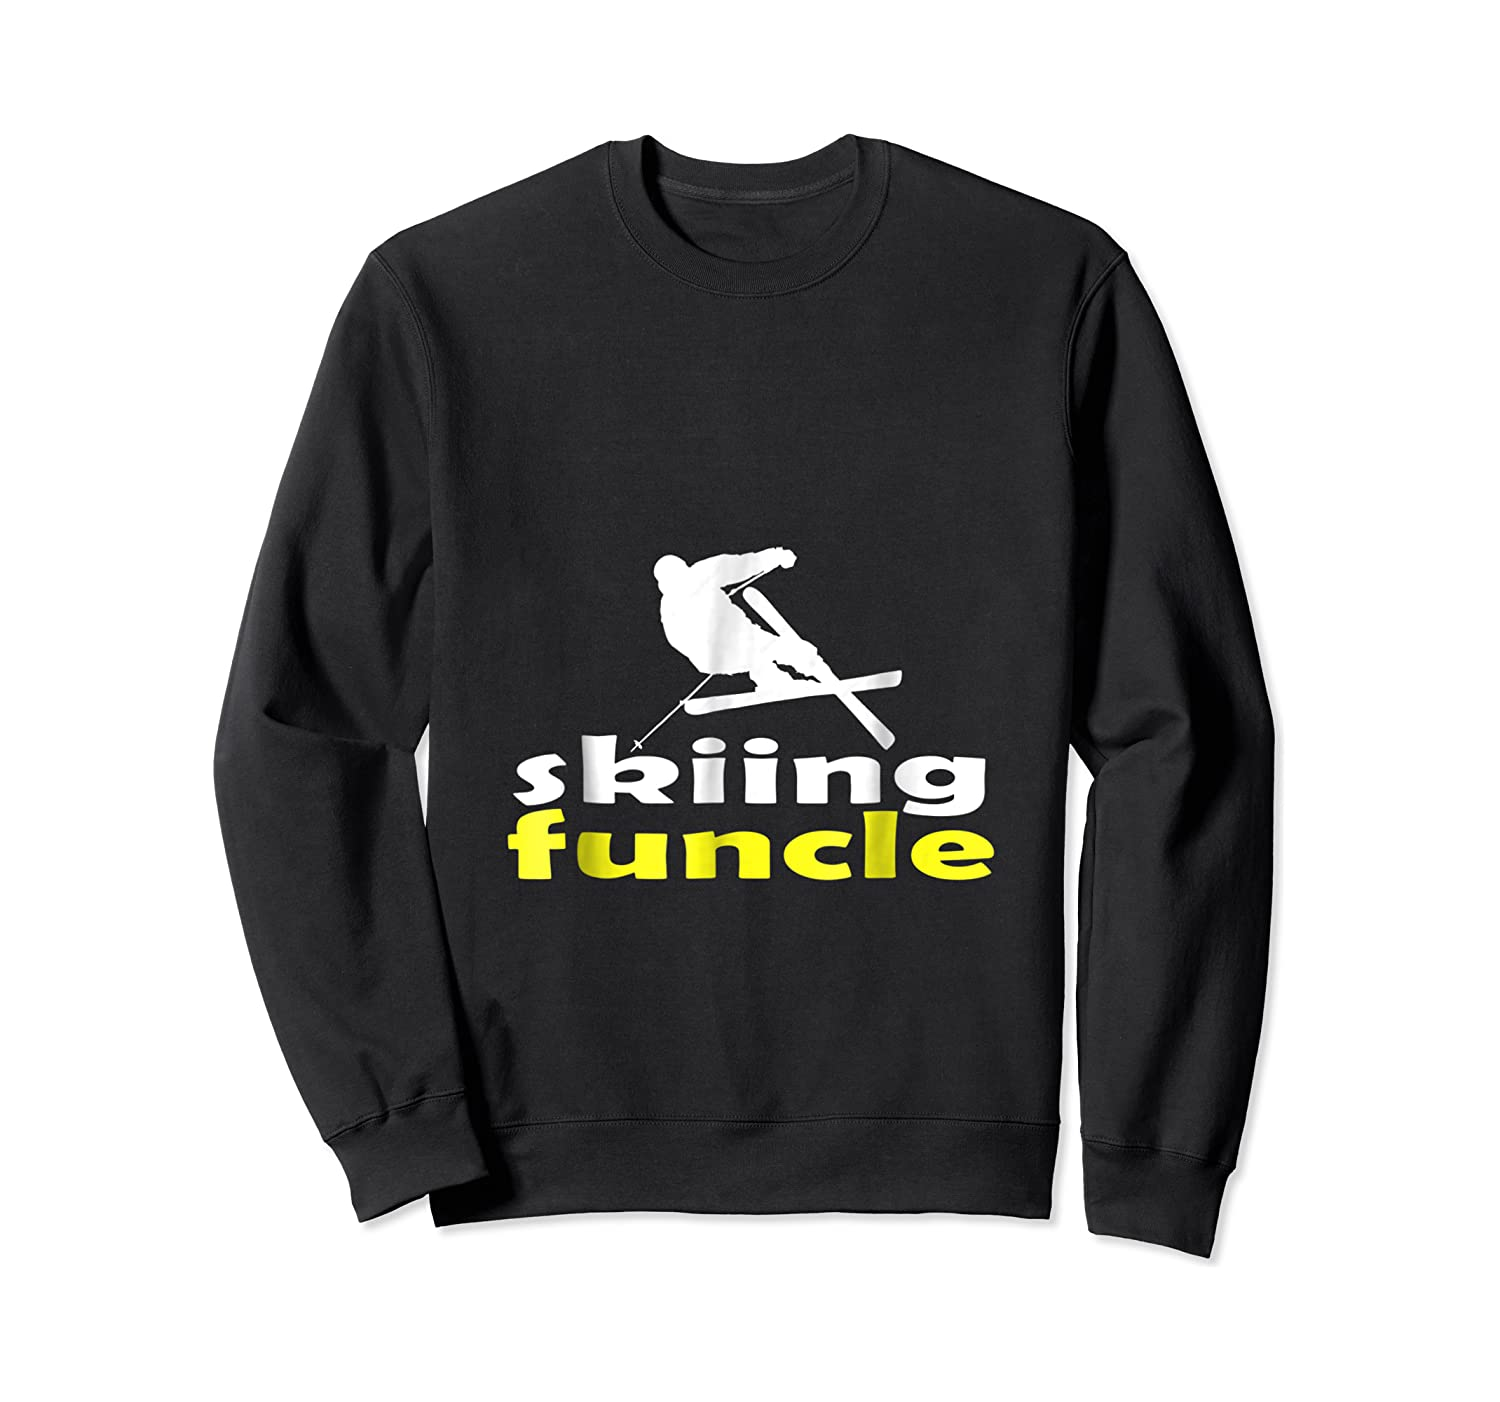 S Skiing Funcle Shirts Uncle Ski Gifts Definition For S Tee Crewneck Sweater